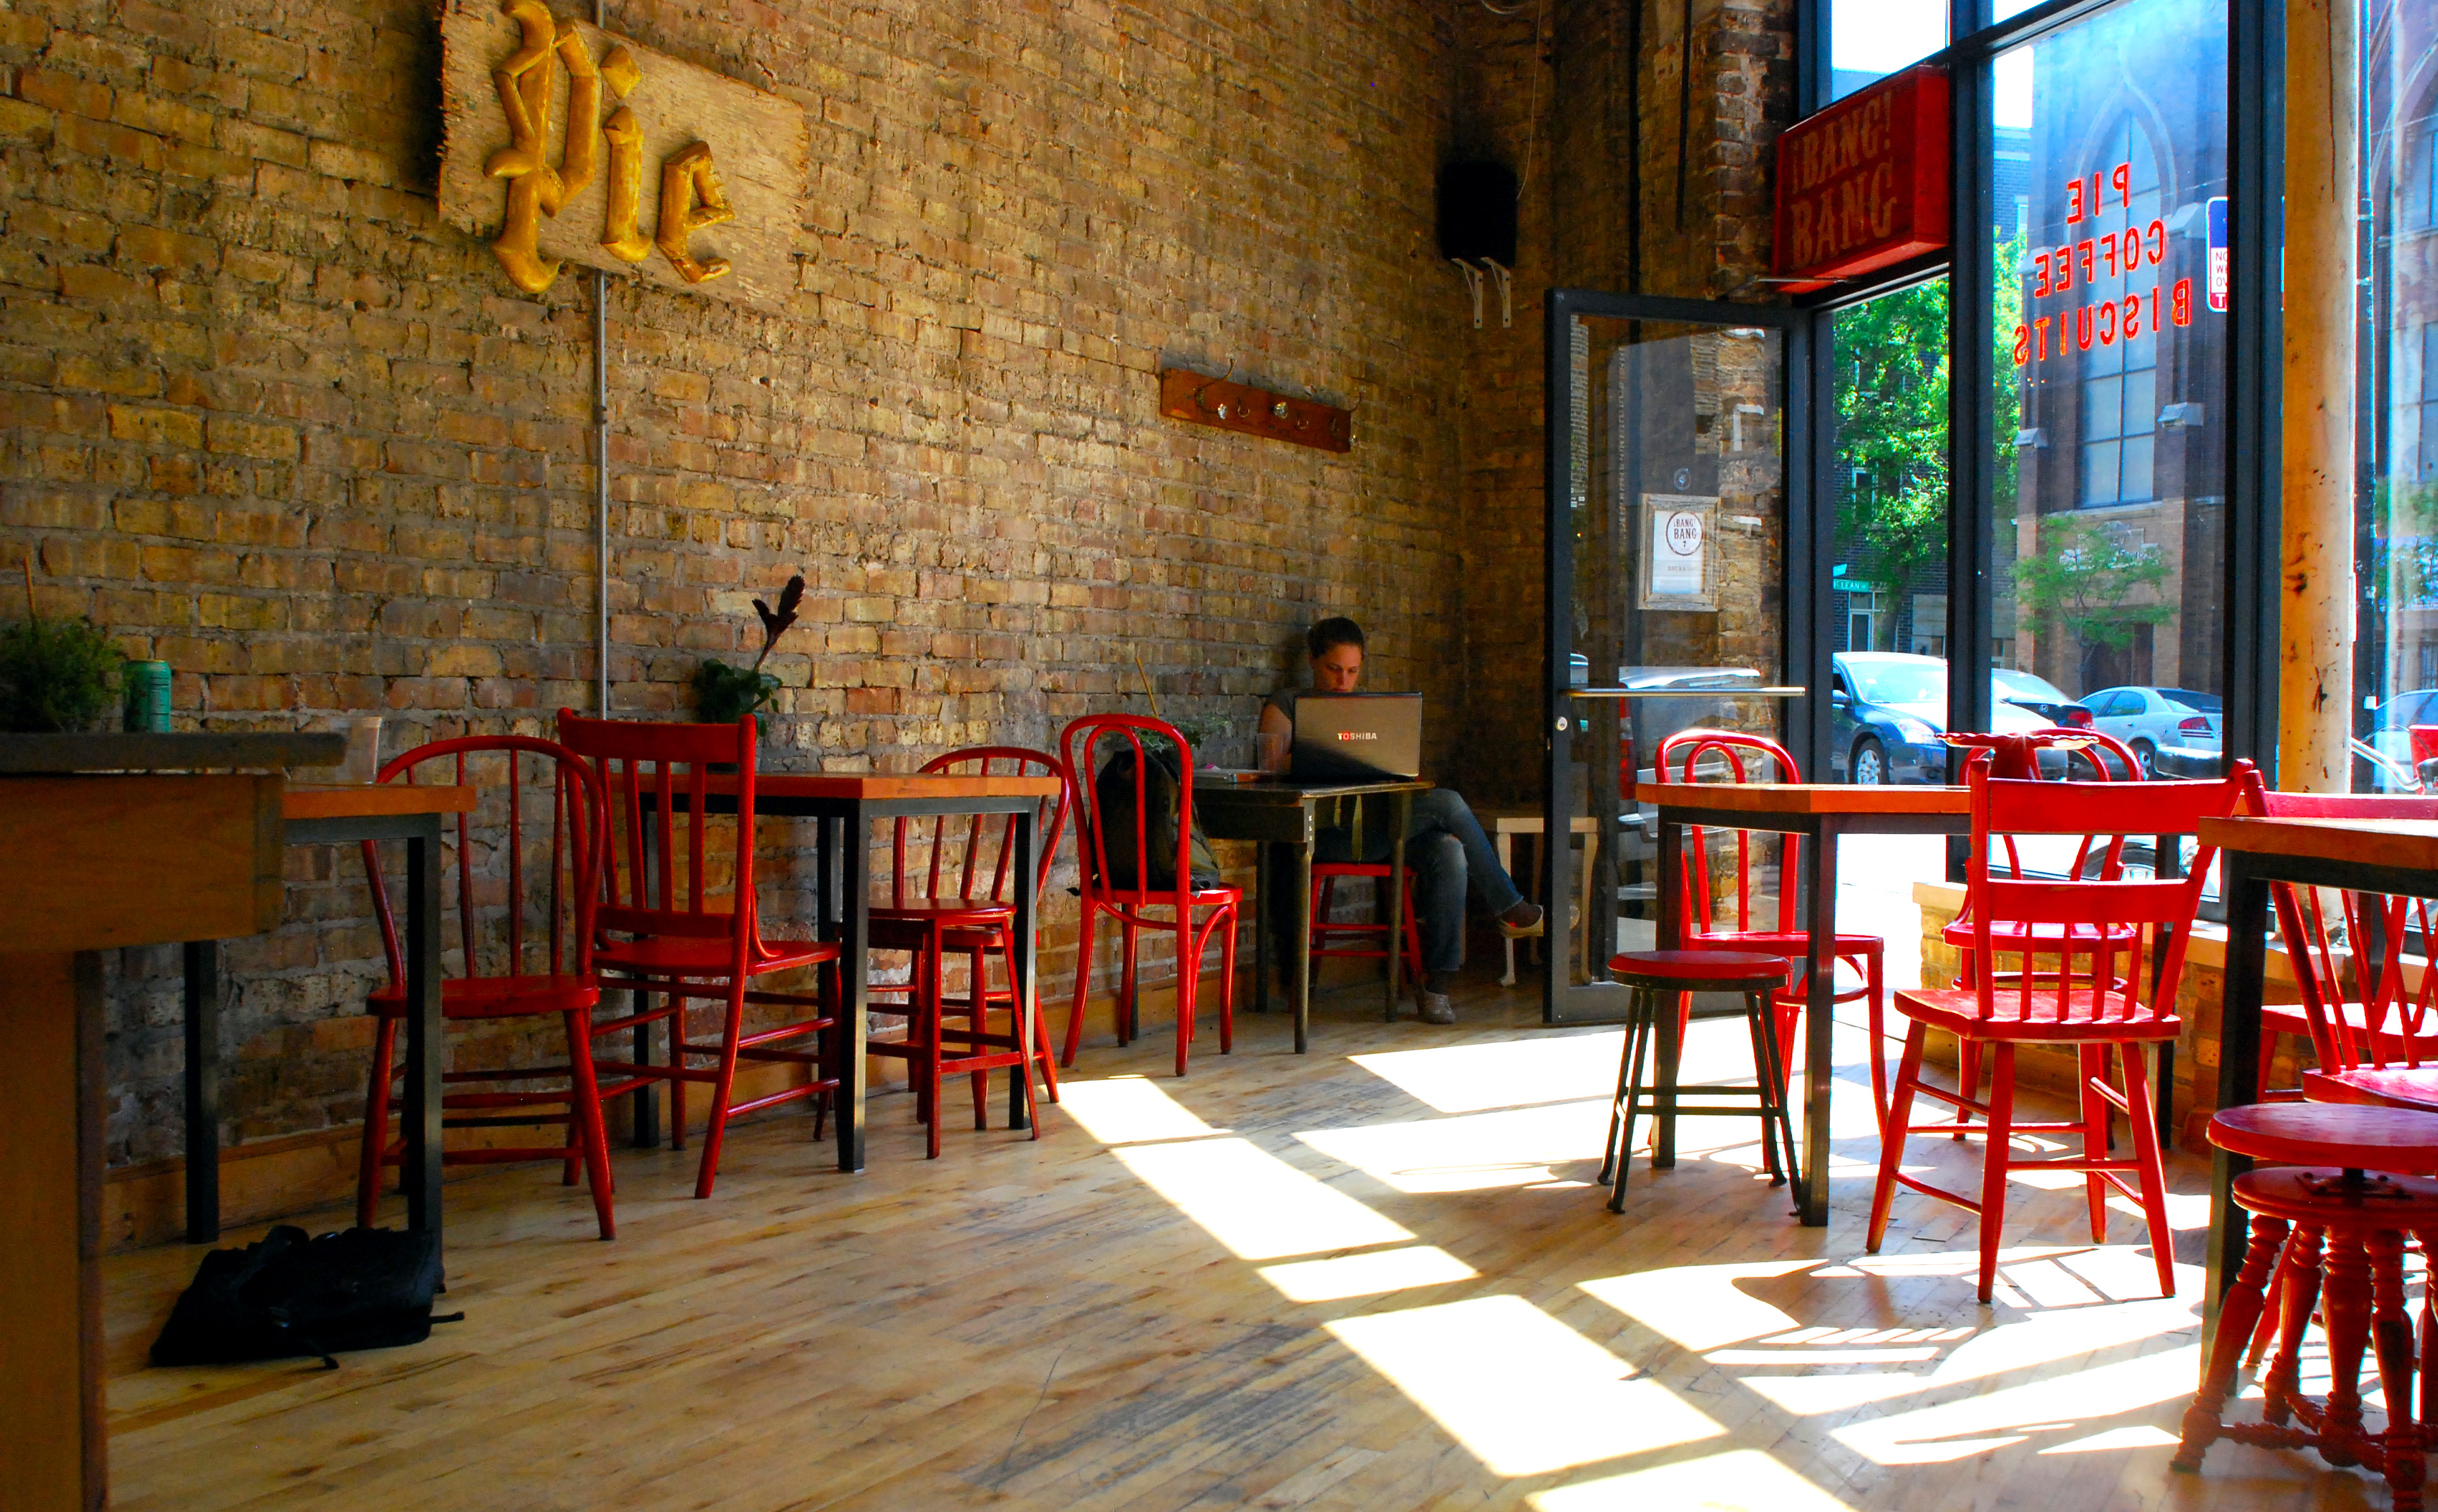 7 Affordable First Date Ideas in Chicago - Bang Bang Pie Shop